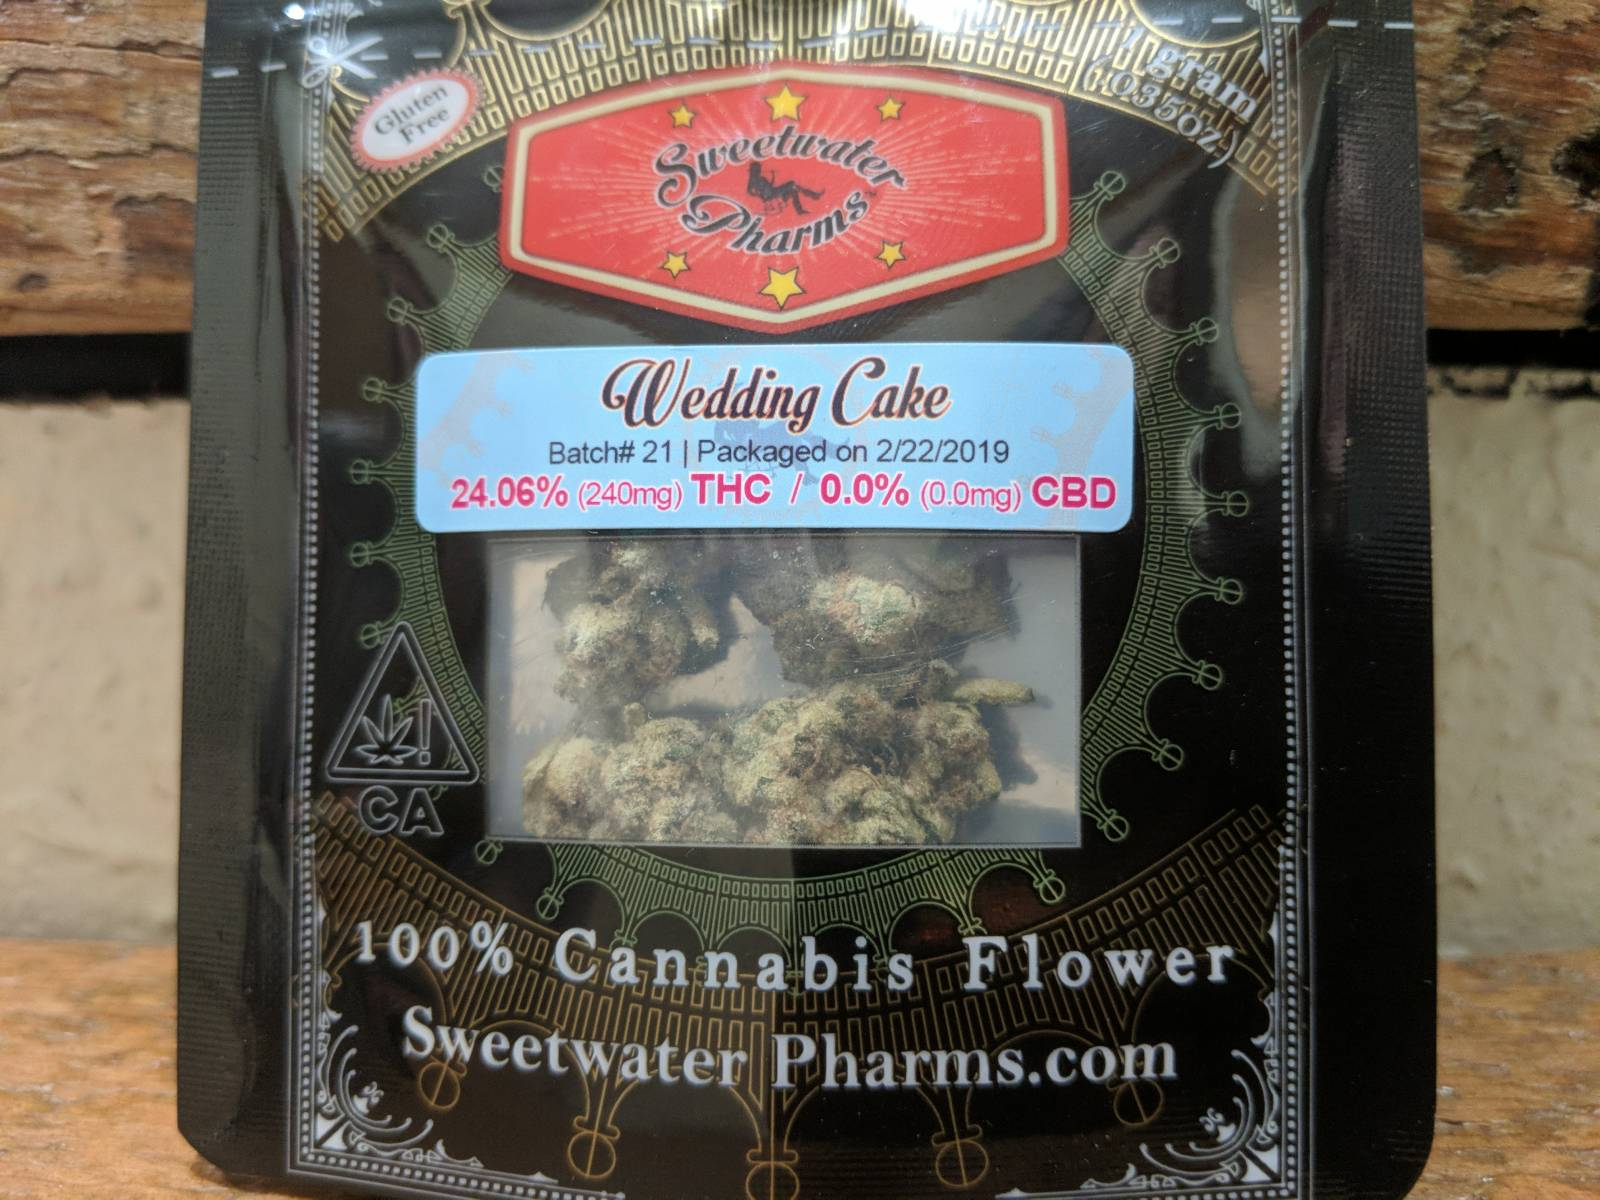 Sweetwater Farms wedding cake gram